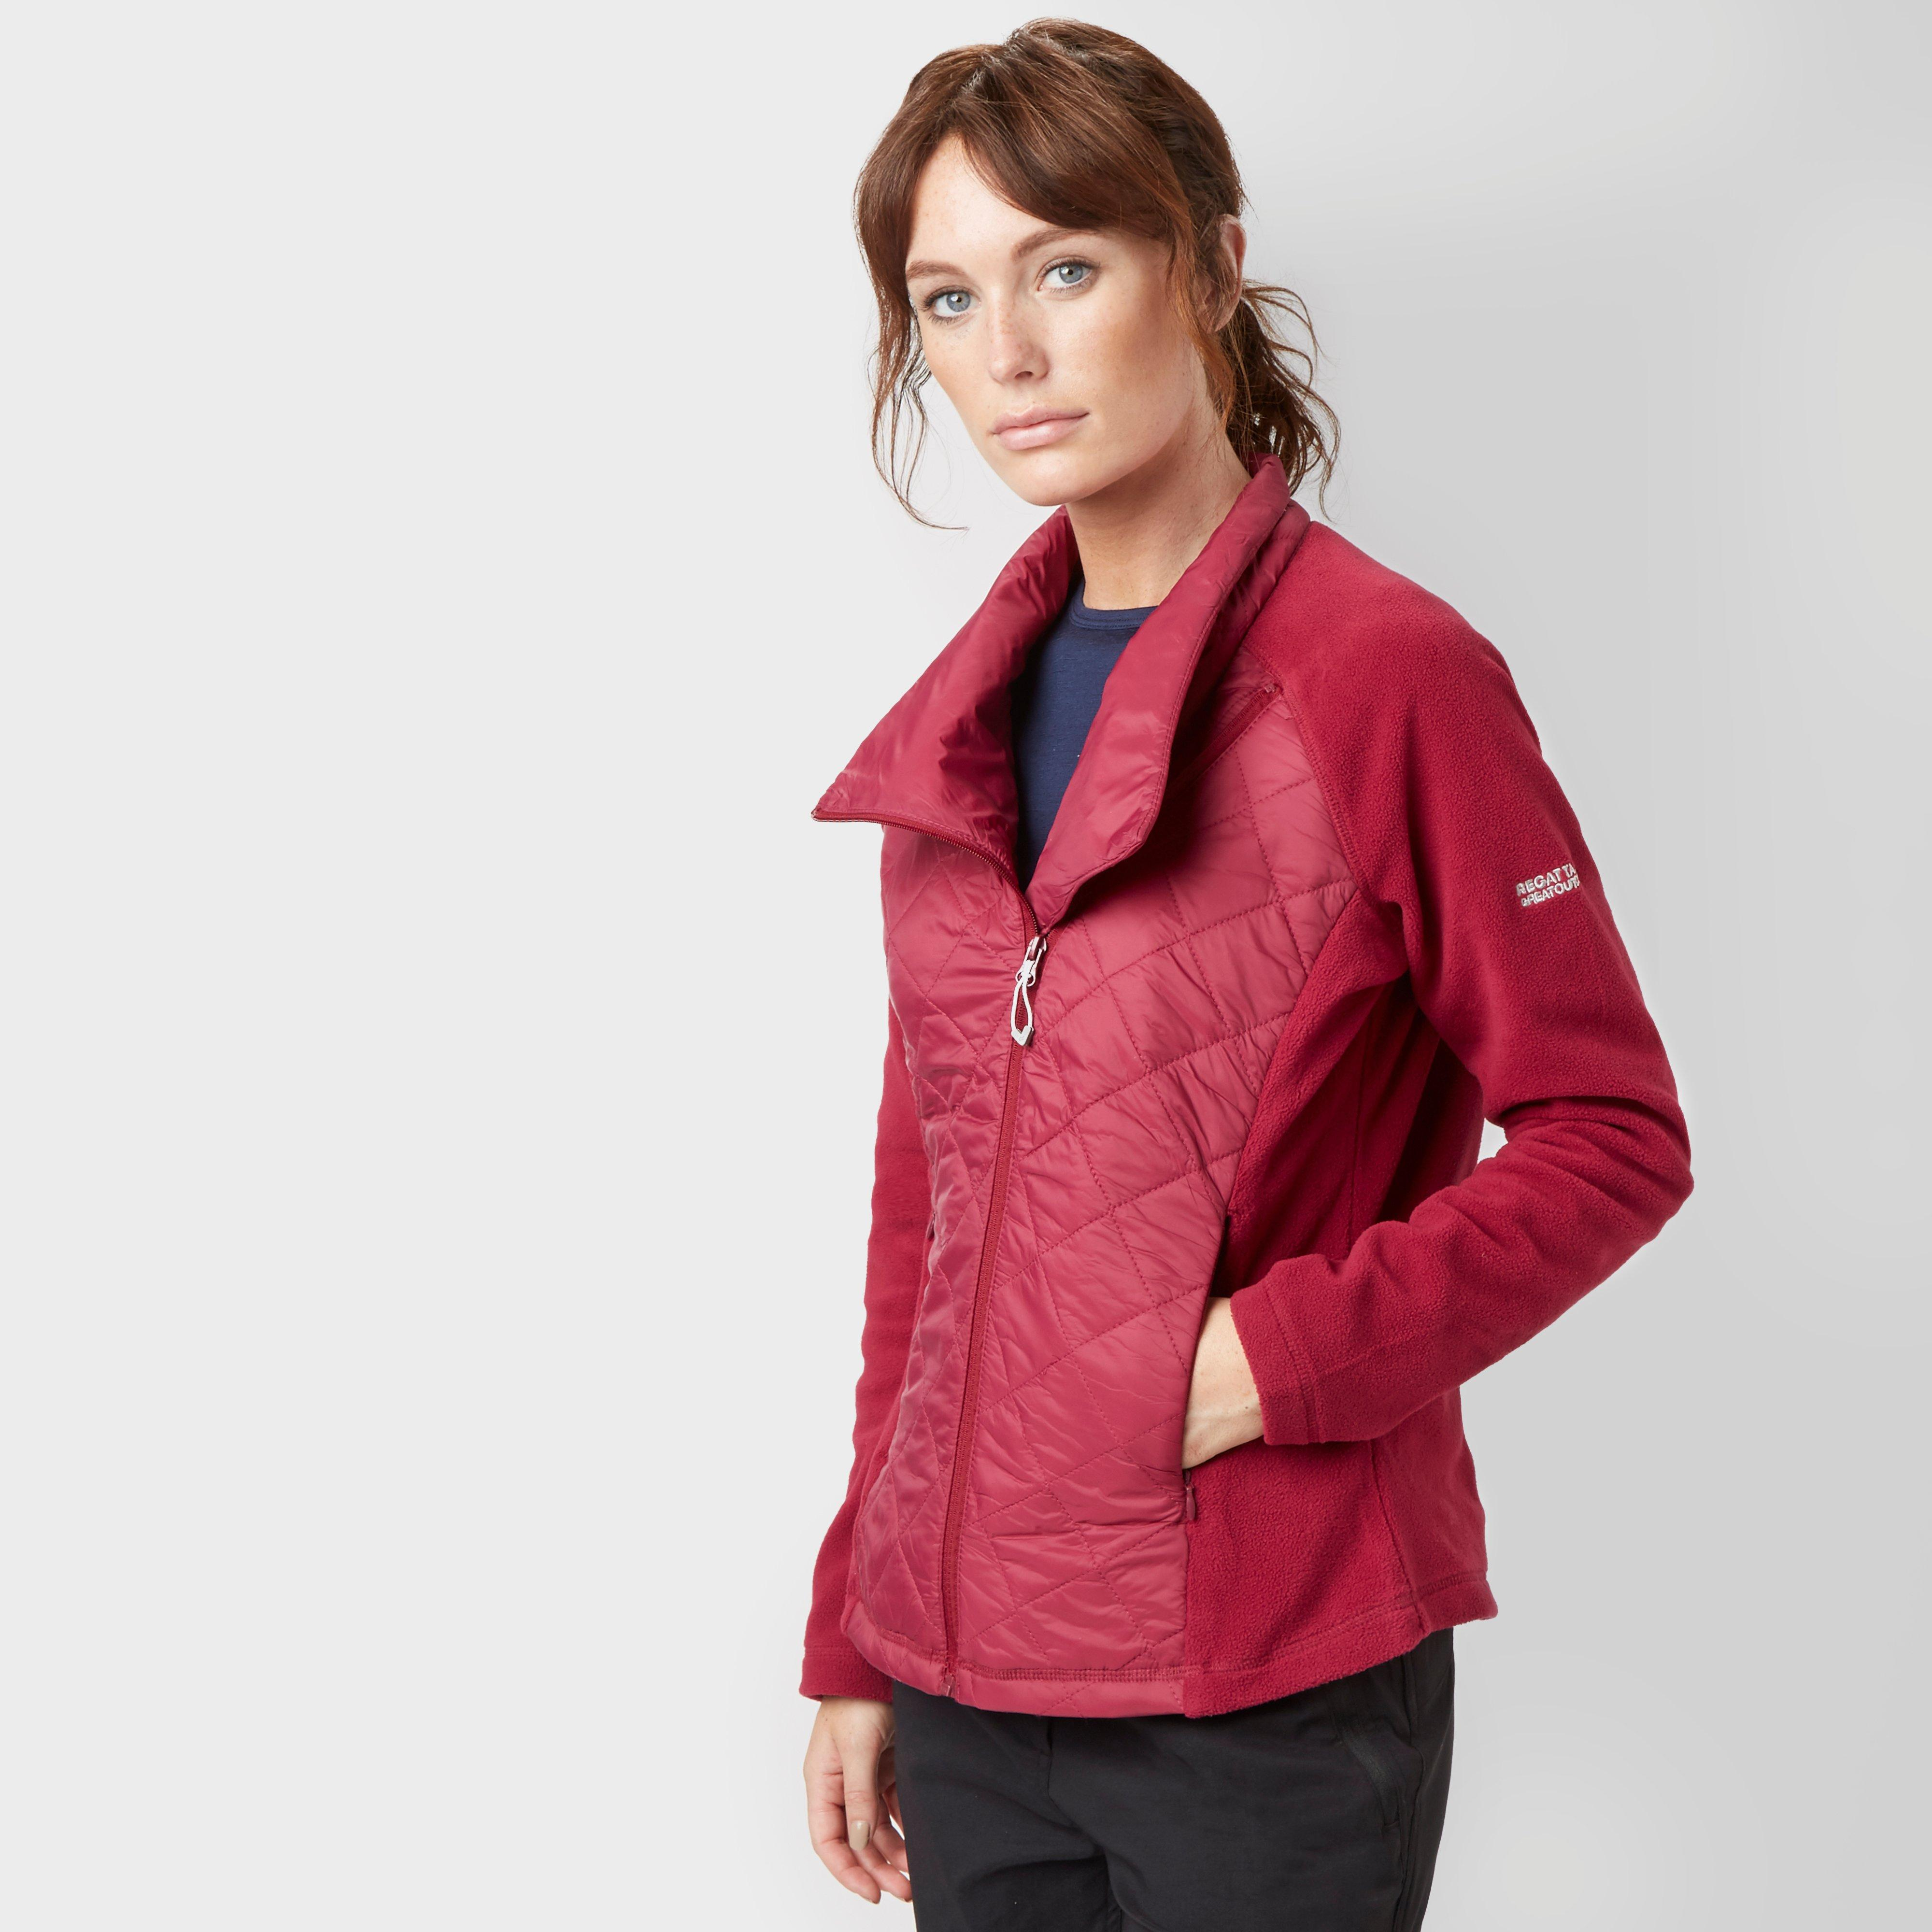 Regatta Womens Chilton Hybrid Jacket Pink